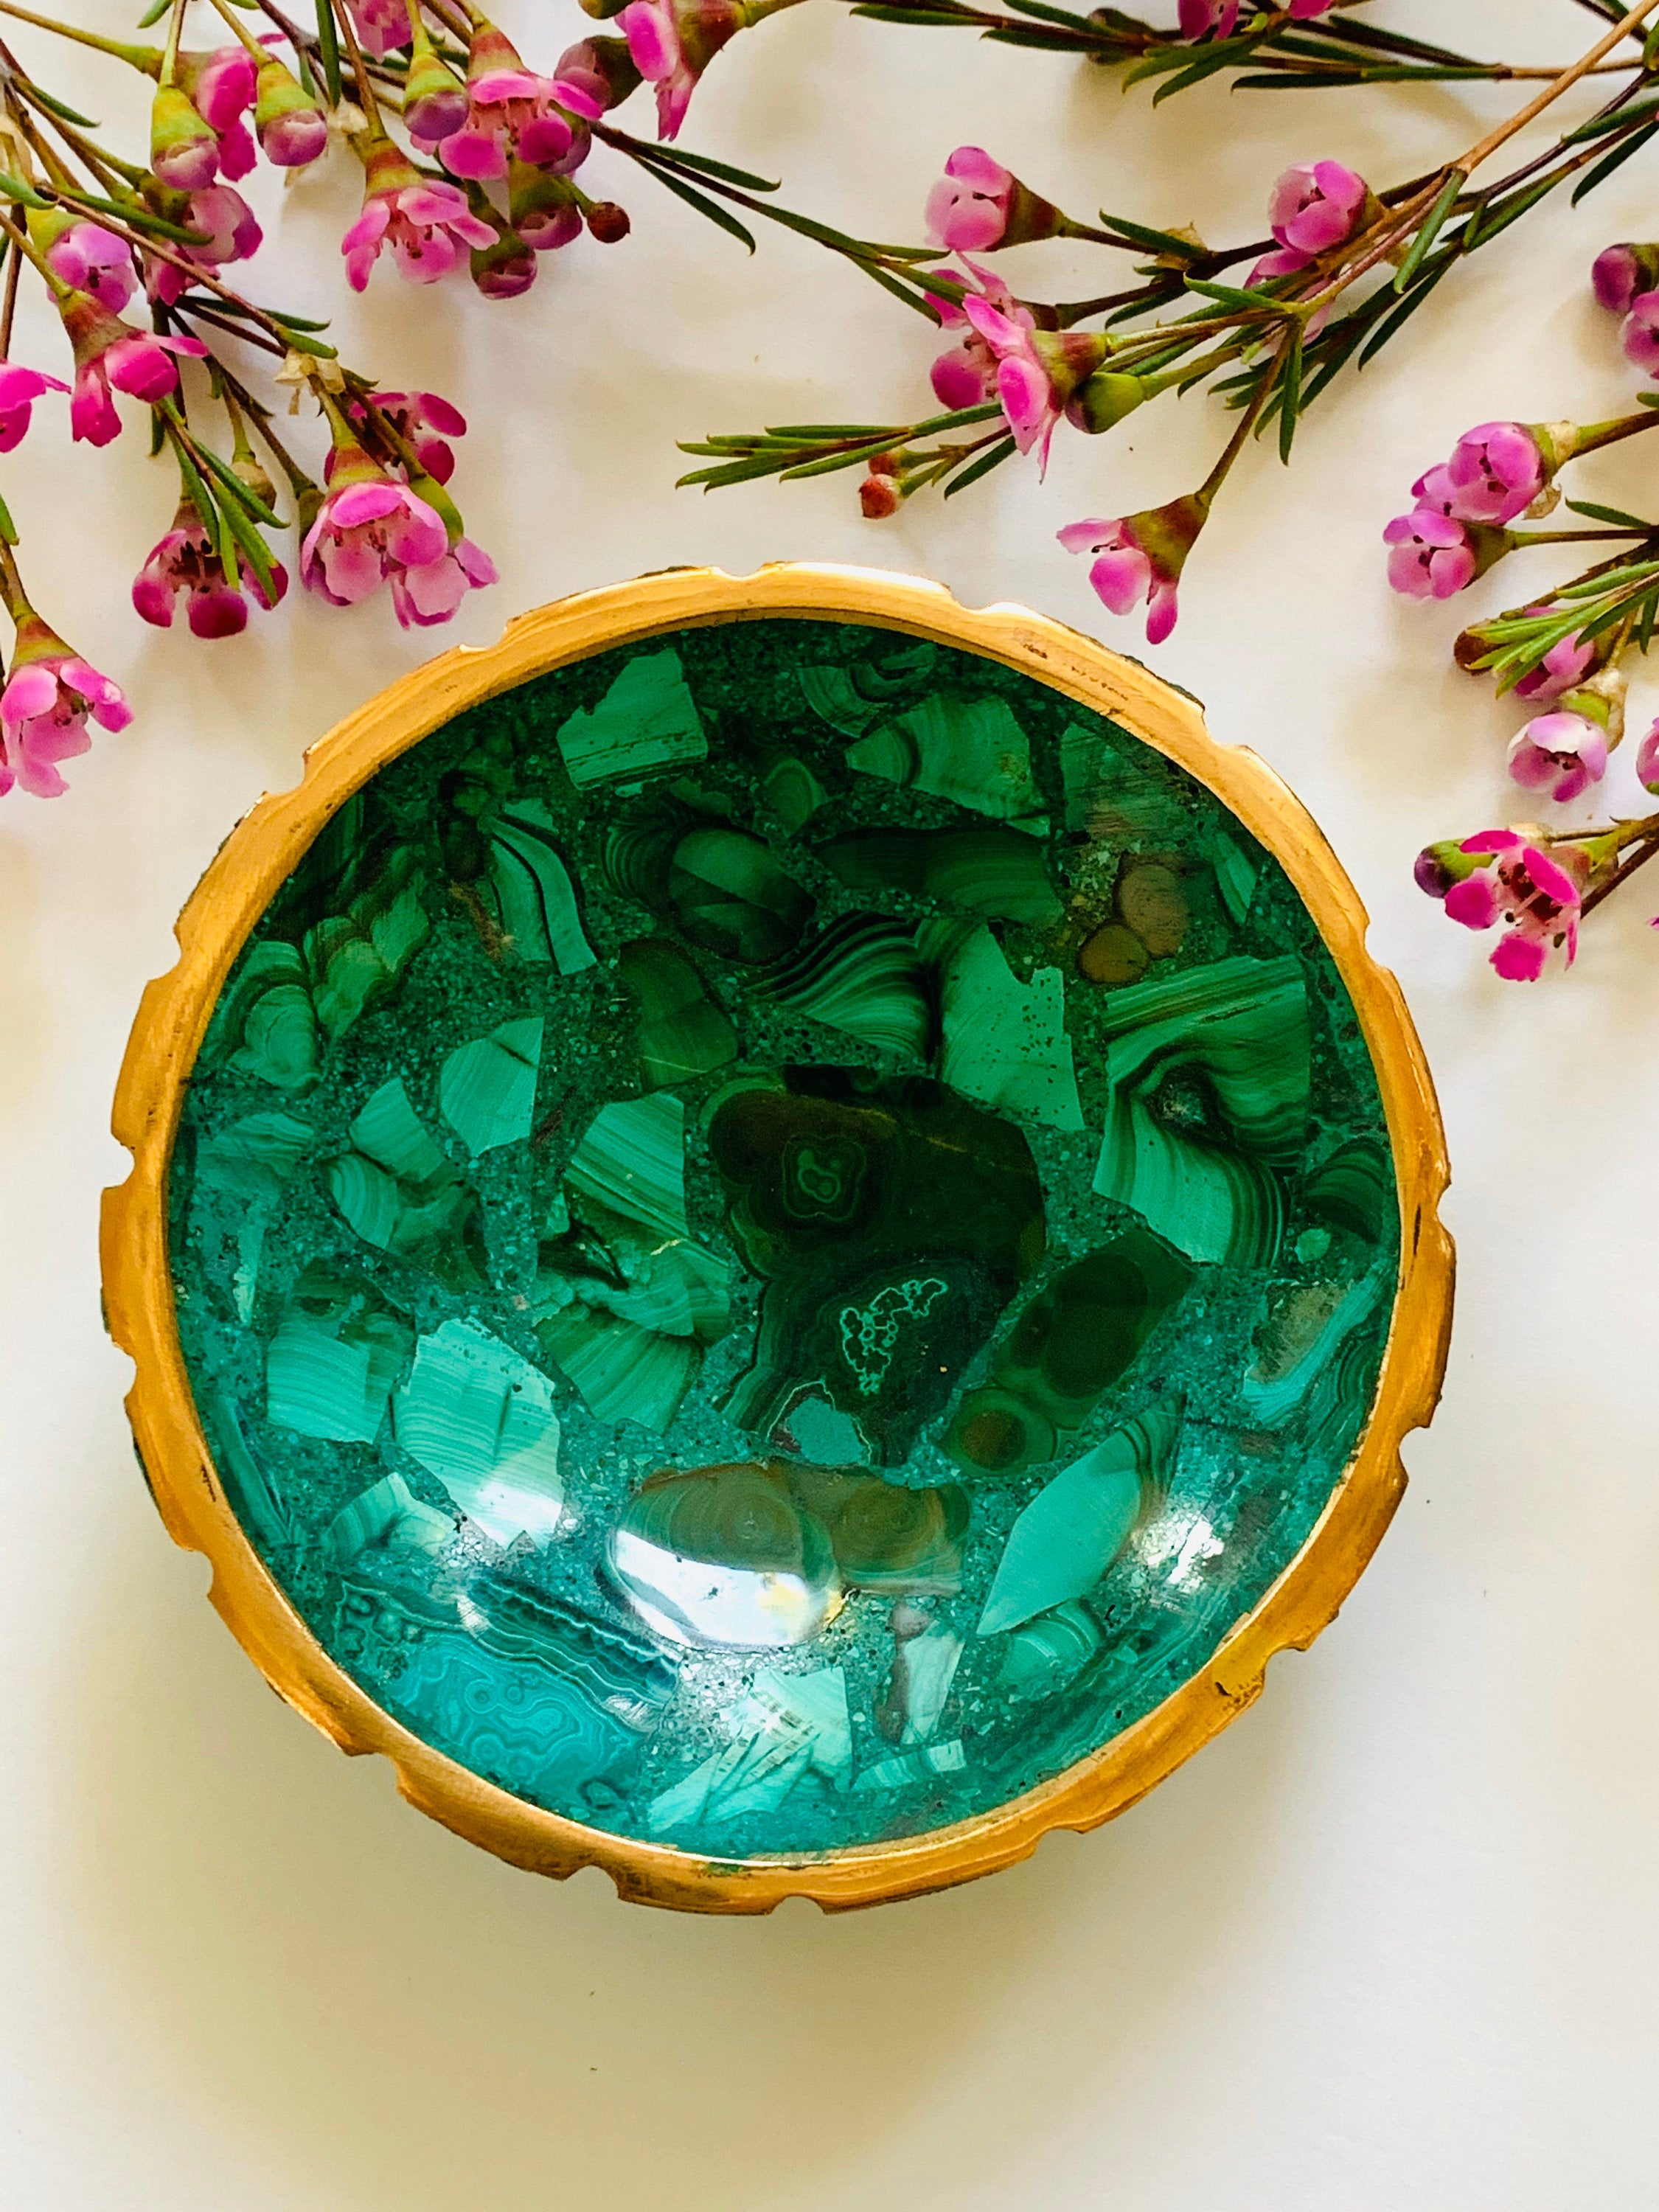 Malachite catchall dish, malachite bowl, malachite soap dish, Stone bowl, Bathroom Decor, Home Decor, malachite, Ring dish, Ring Tray,